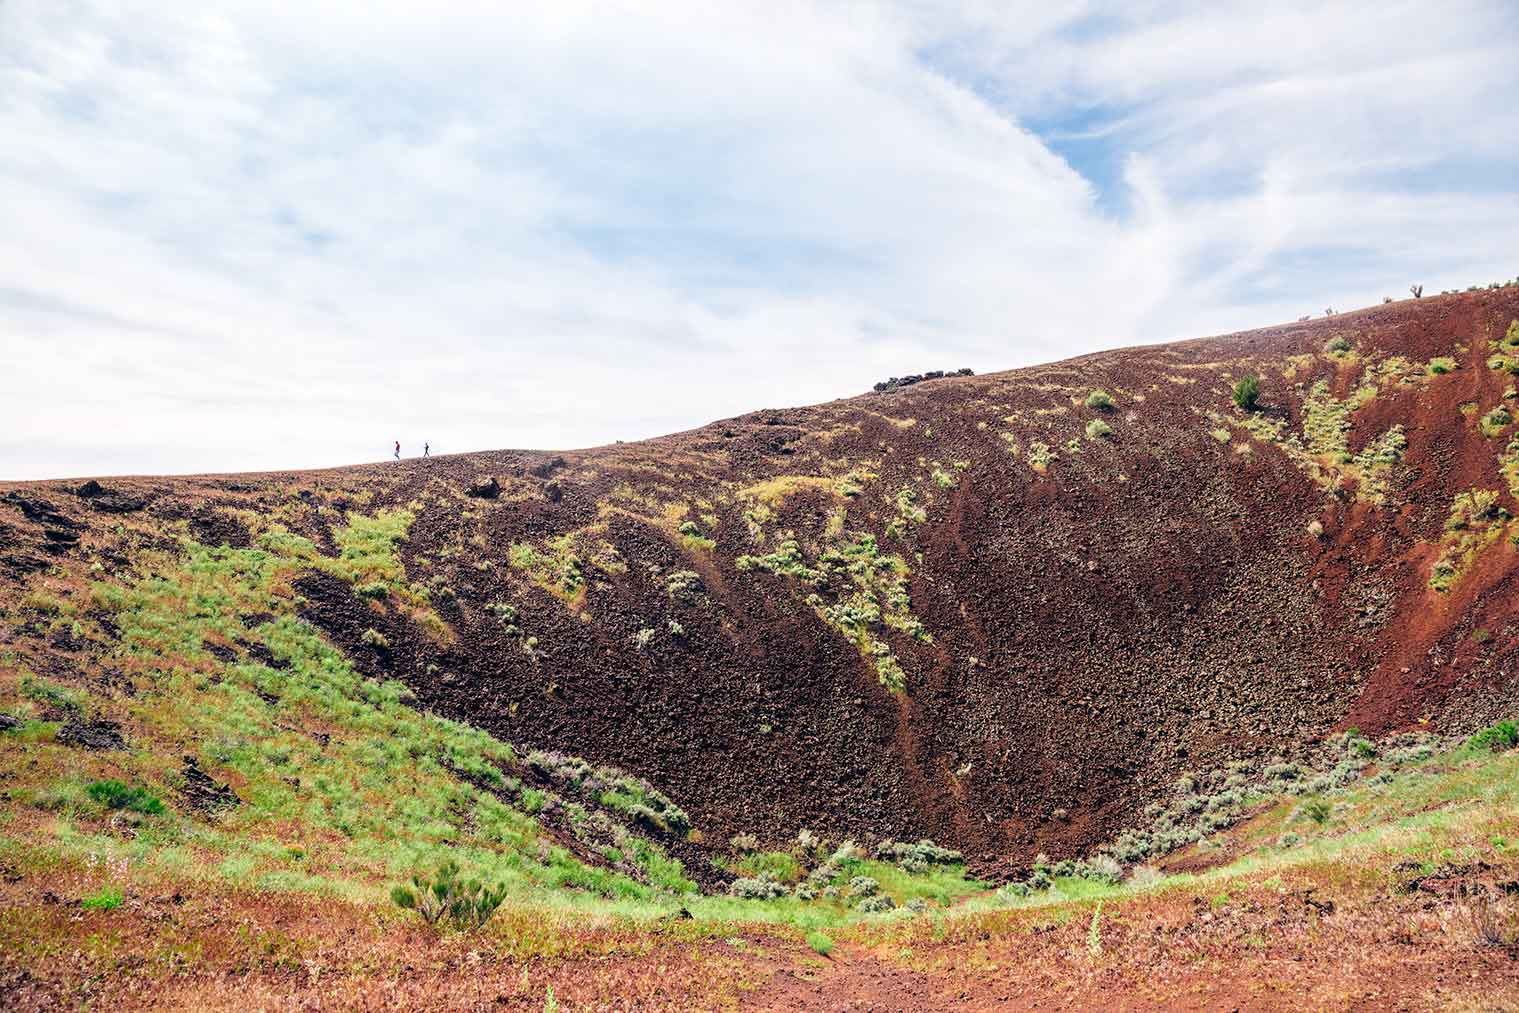 Hike to the top of a cinder cone outside of St. George, Utah